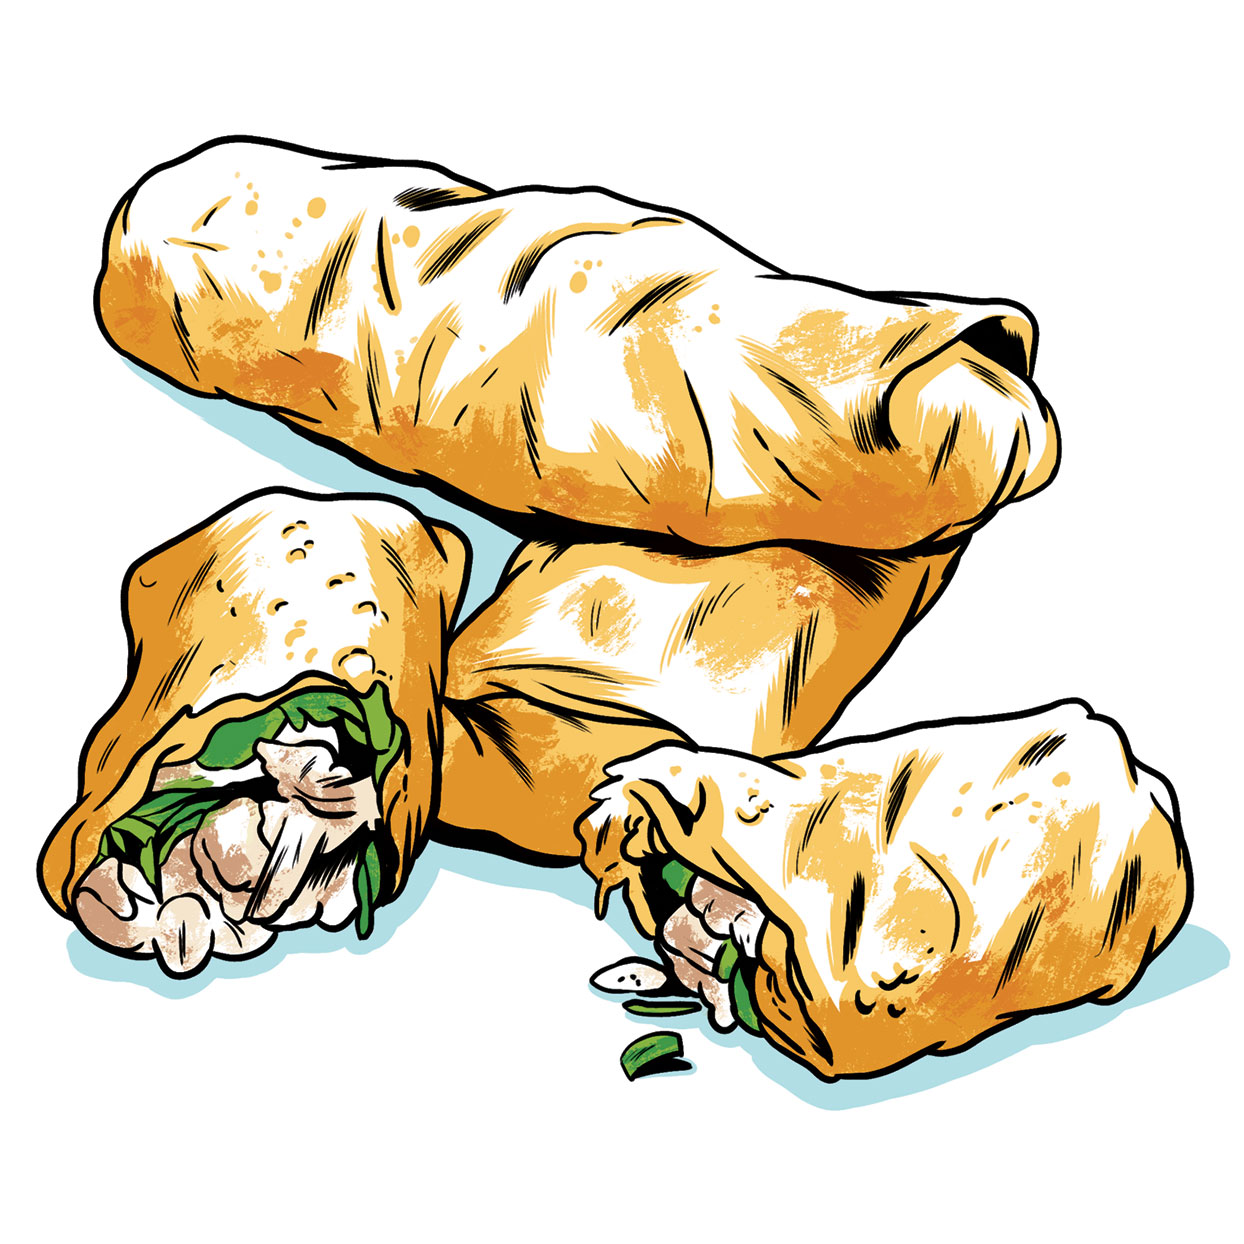 Turkey Egg Rolls illustration